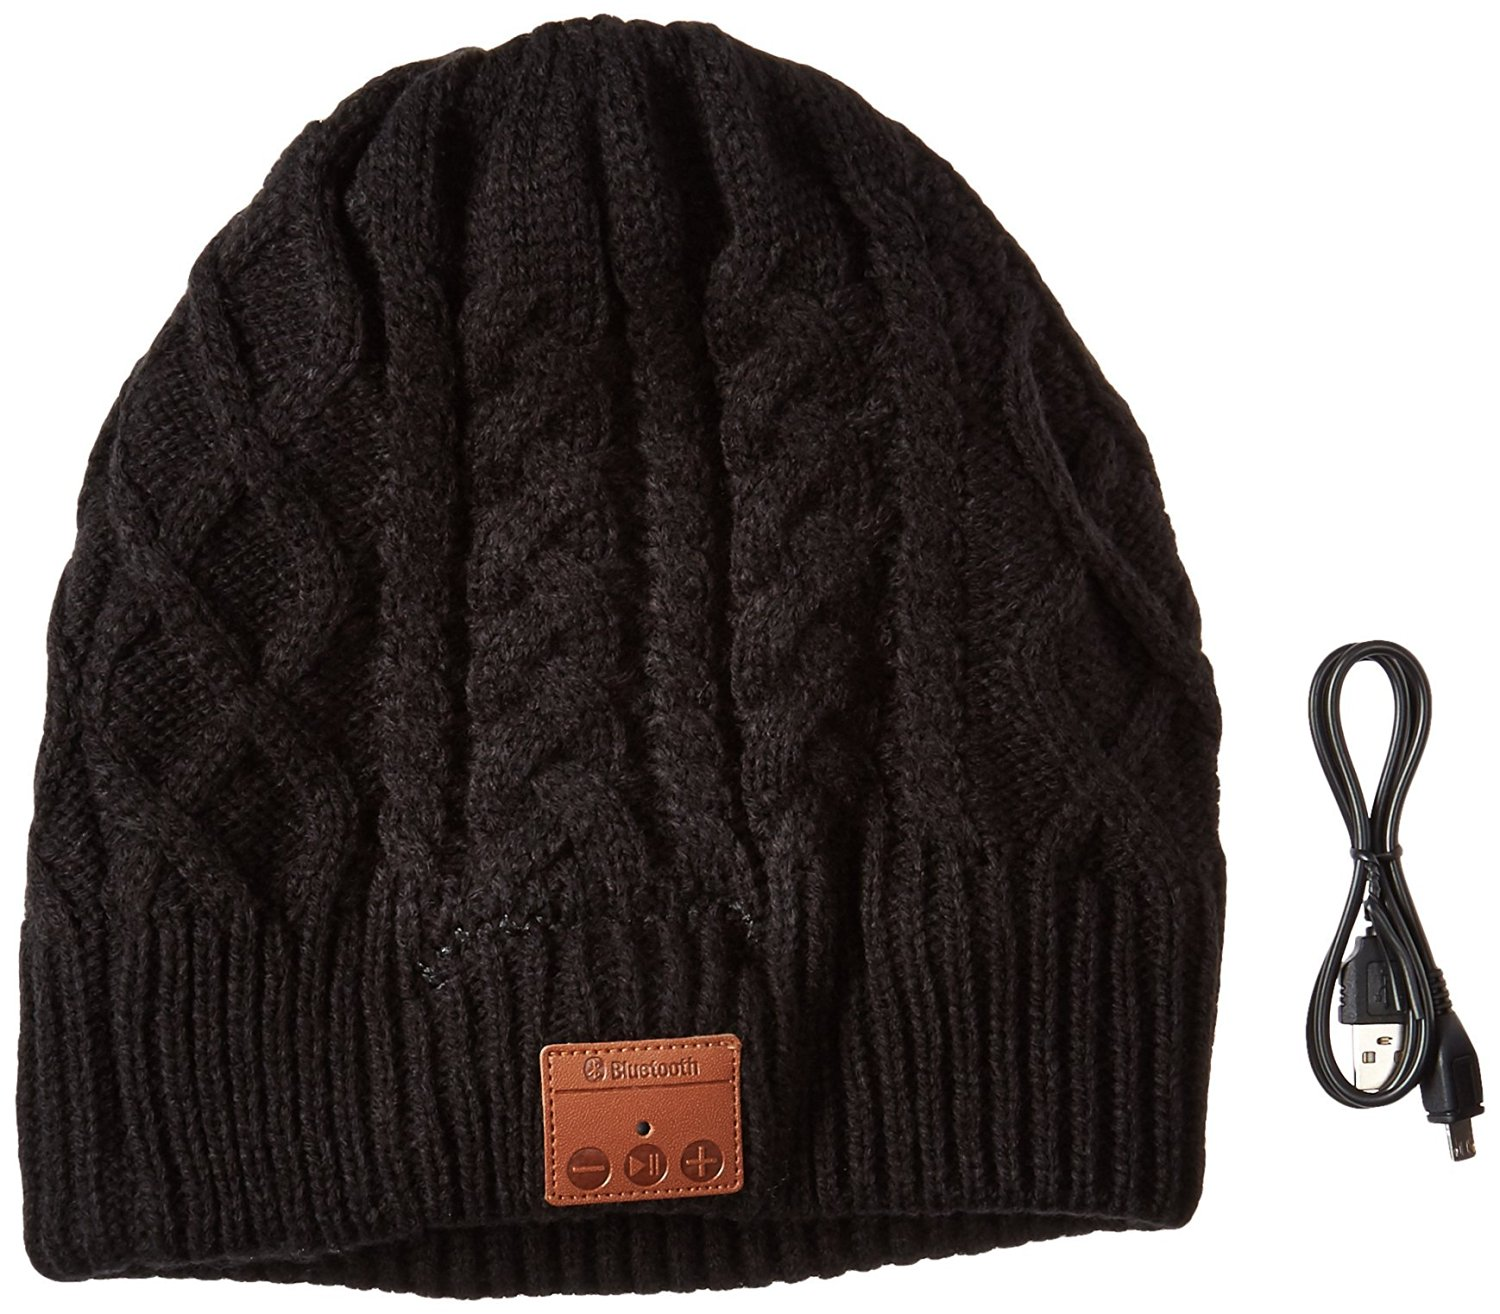 LAYEN Bluetooth Winter Beanie Cable Knit Hat for Men and Women with Stereo  Speaker Headphones bc4ede7de87